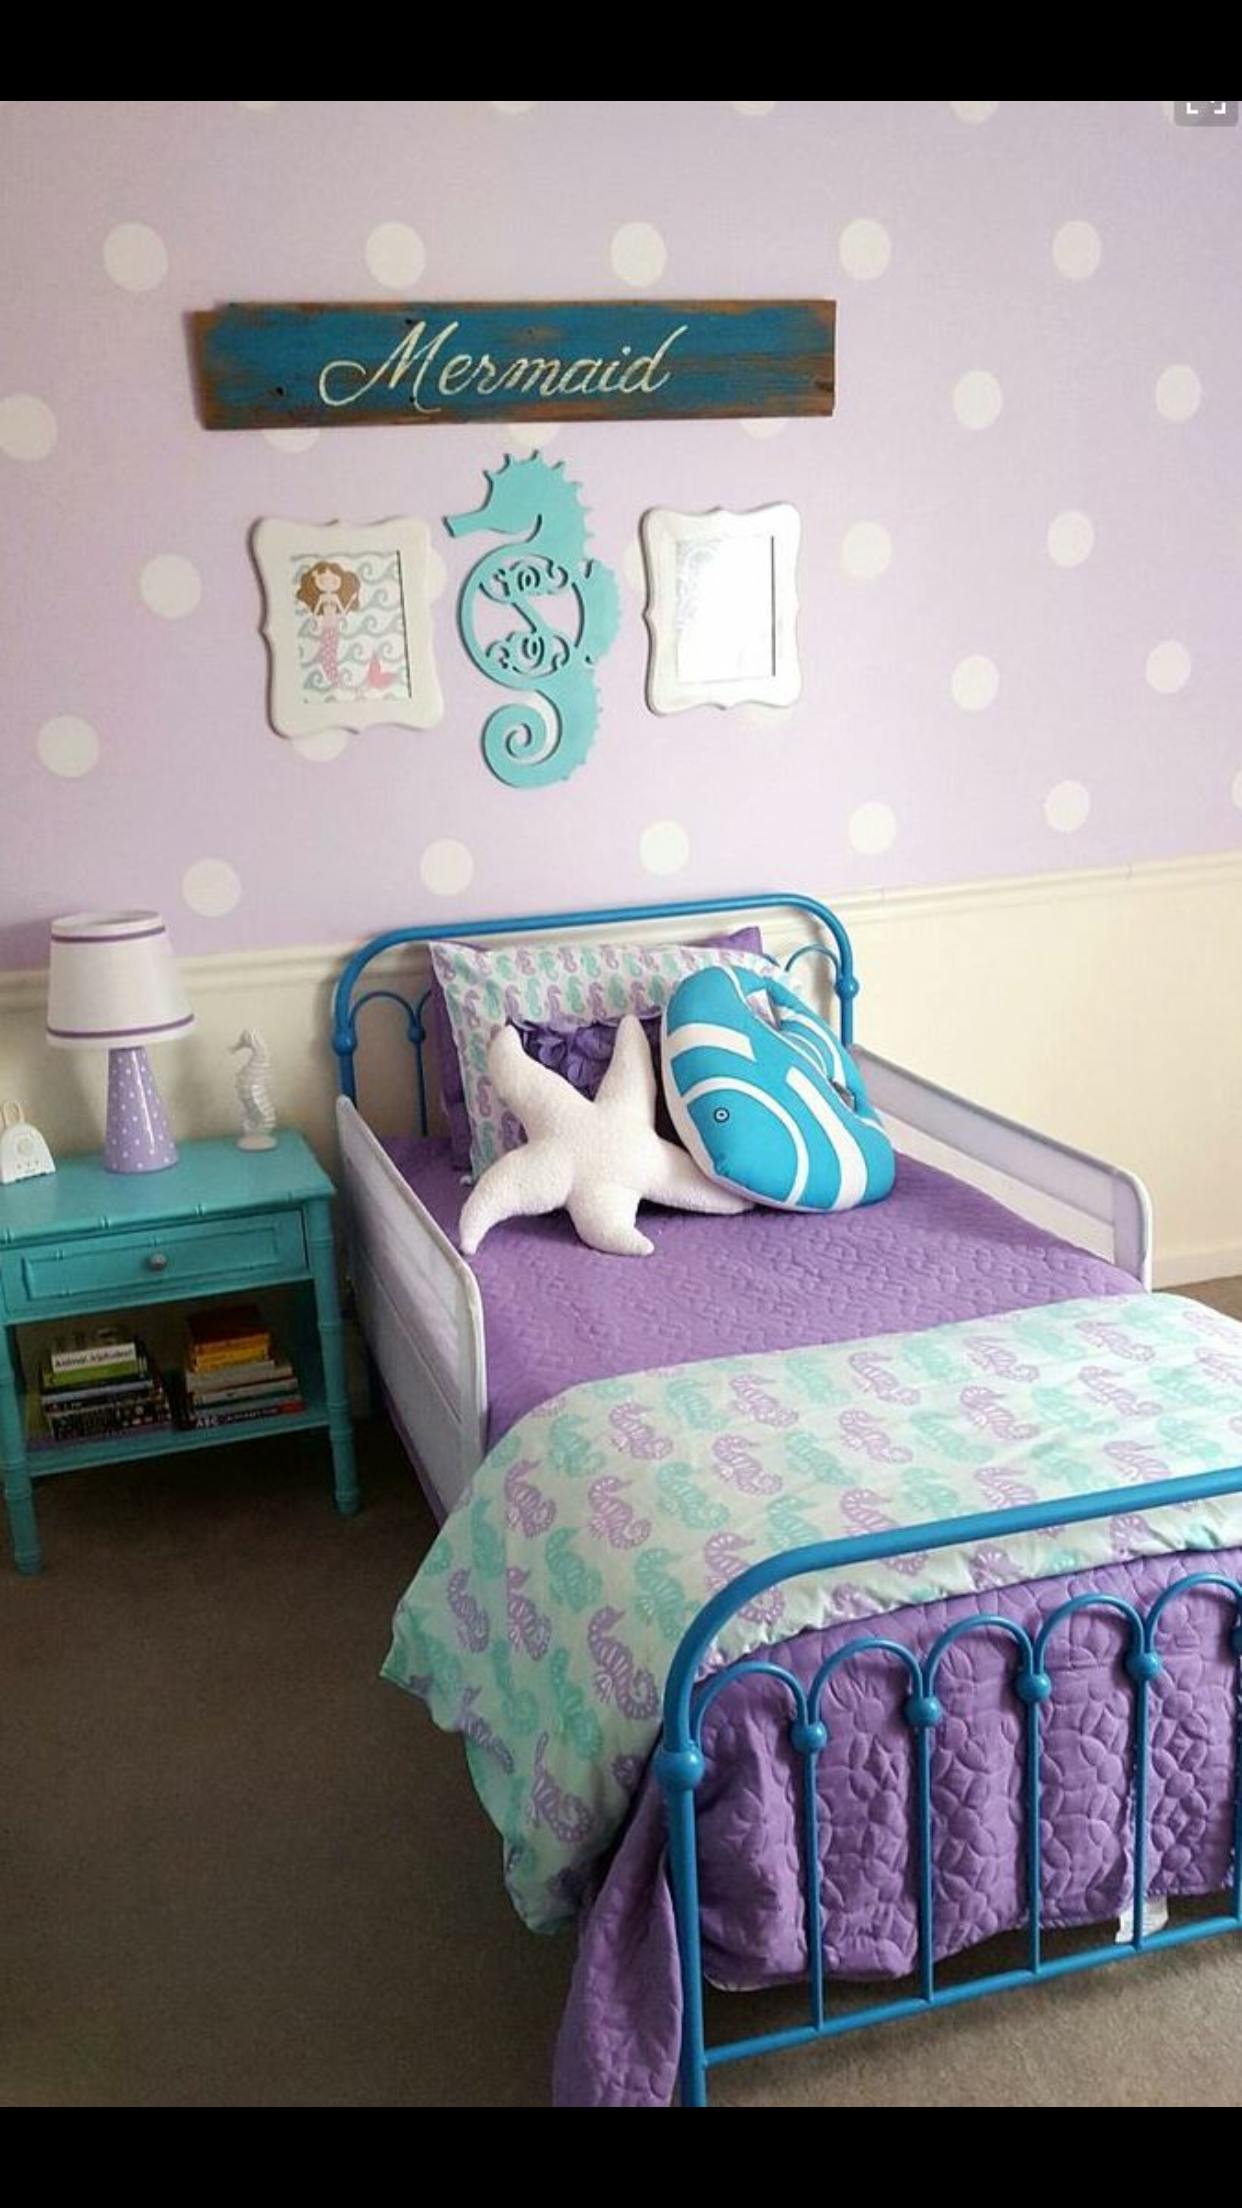 Pin By Lindsay On Baby In 2019 Pinterest Bedroom Room And Mermaid Room